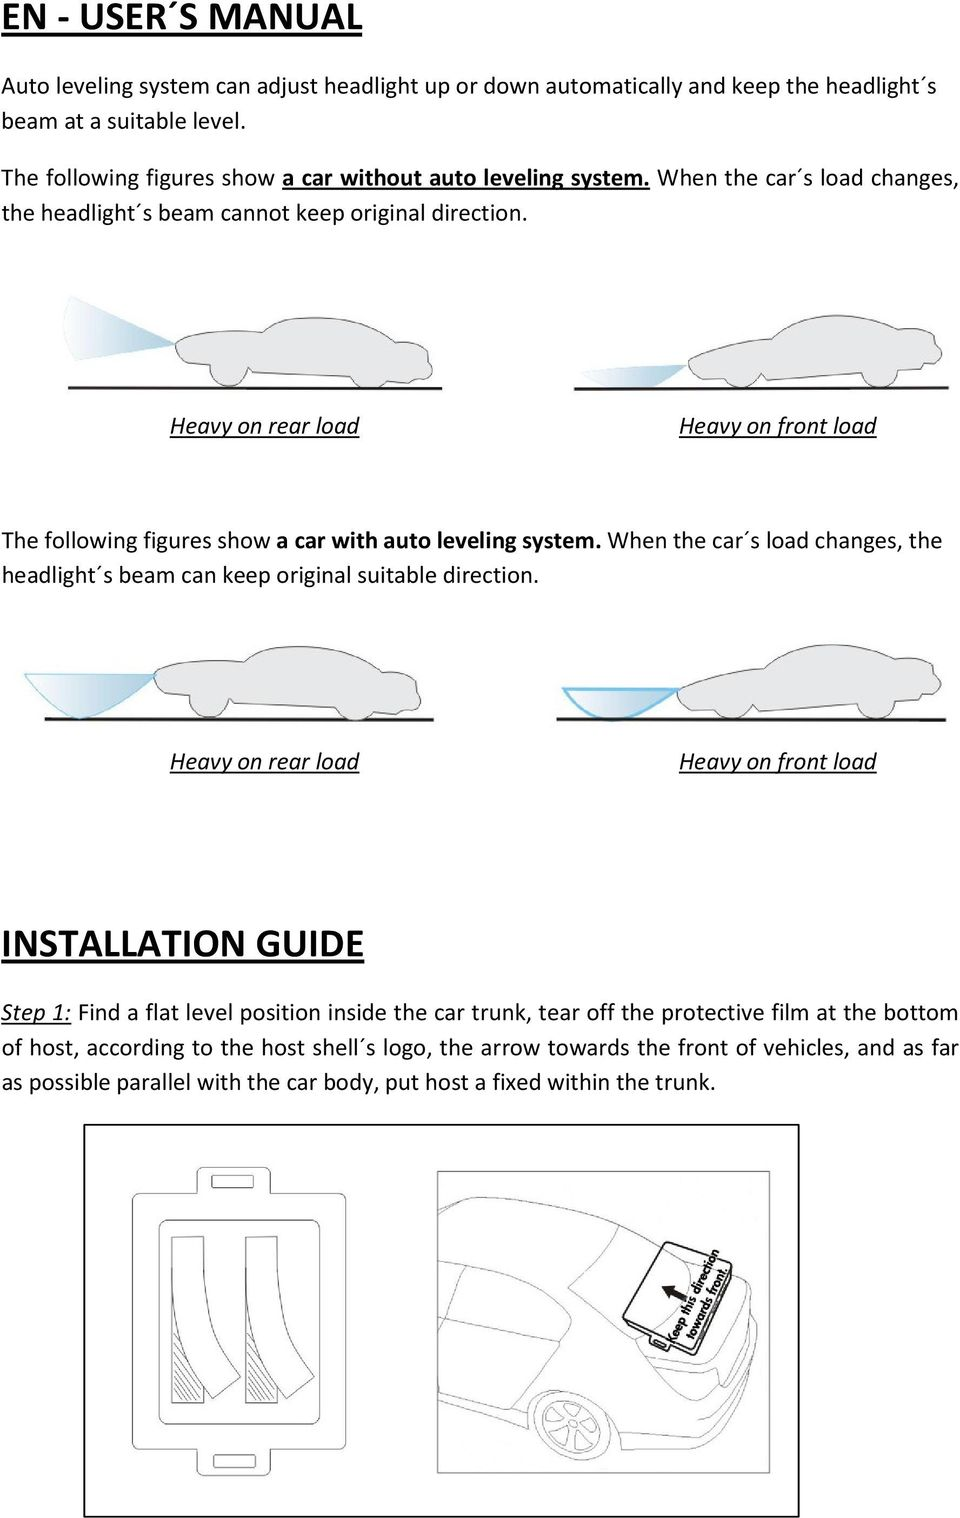 When the car s load changes, the headlight s beam can keep original suitable direction.